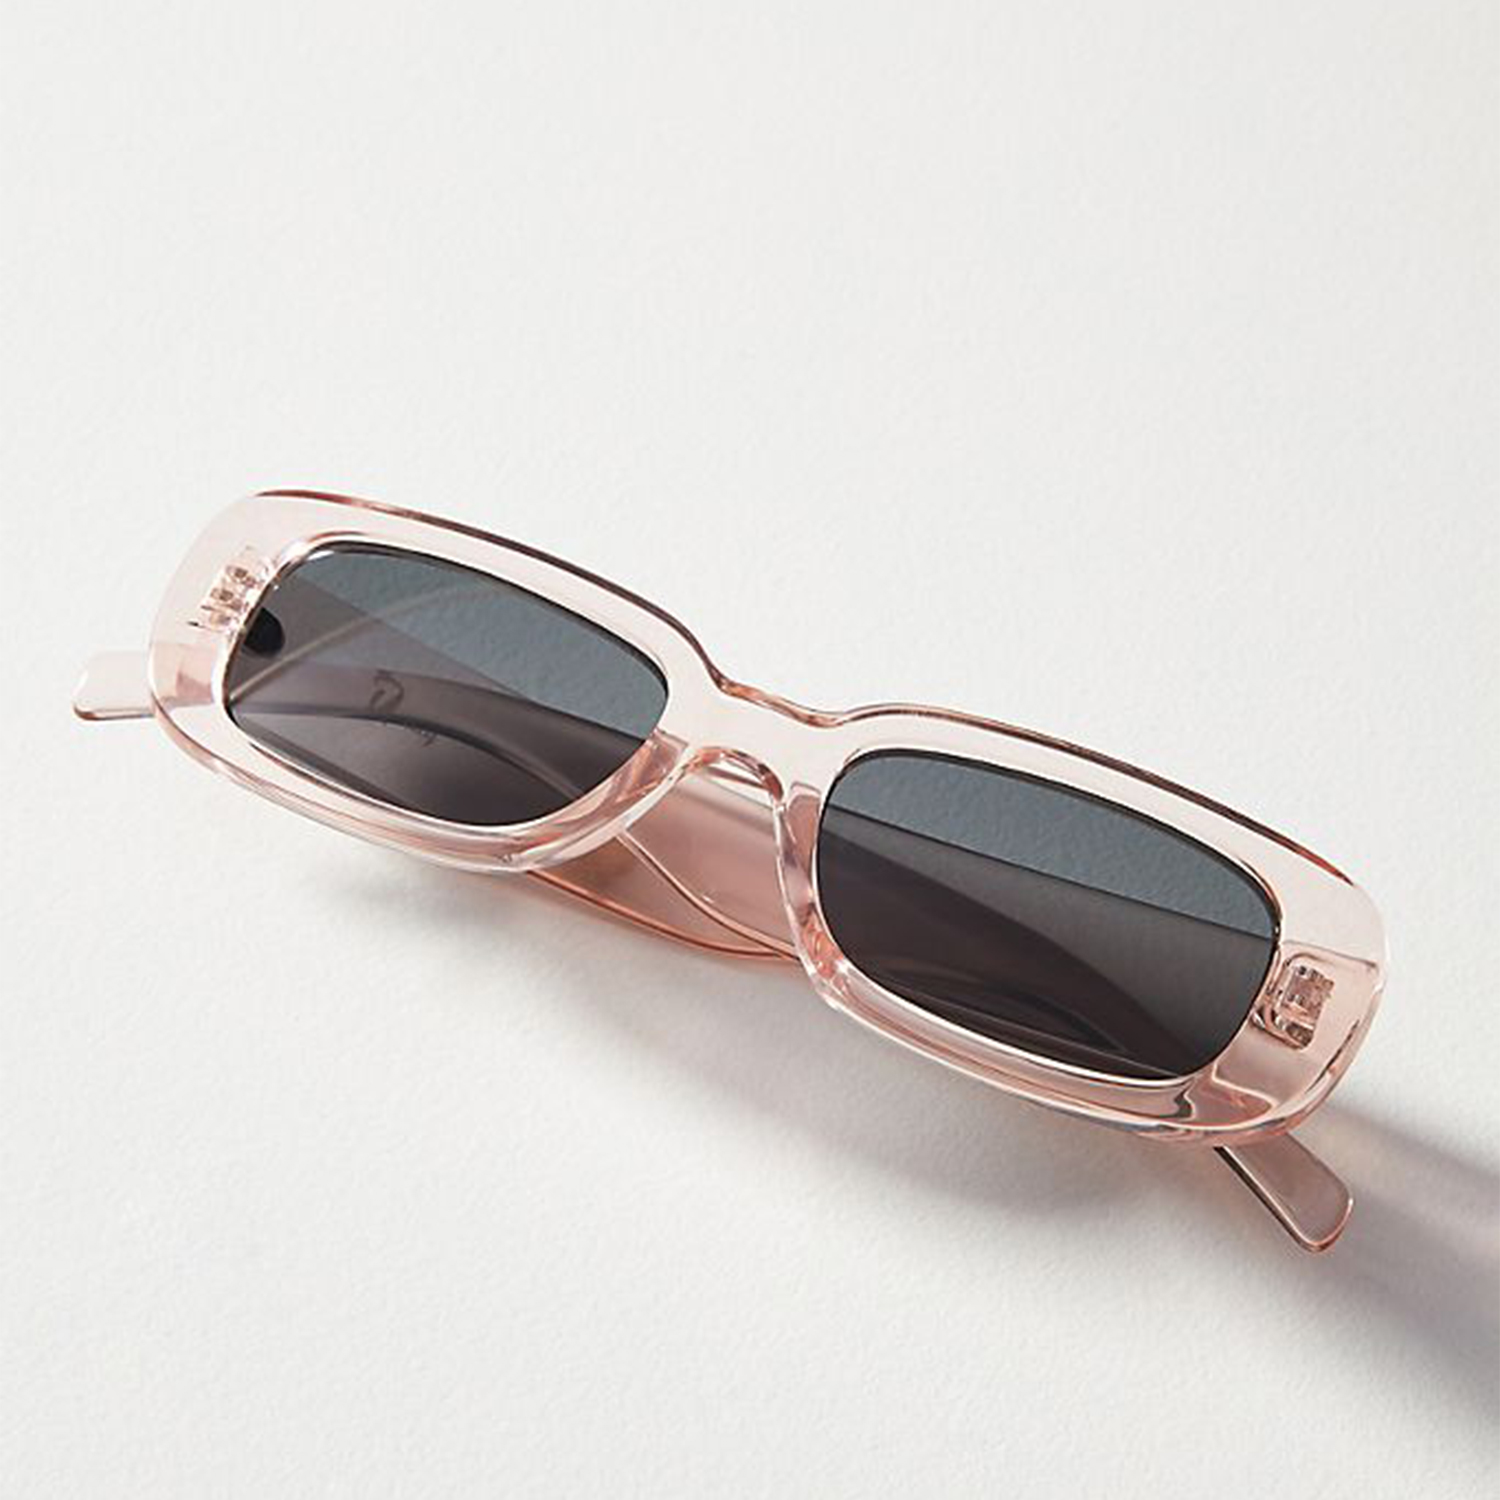 Anthropologie X-Ray Rectangular Sunglasses